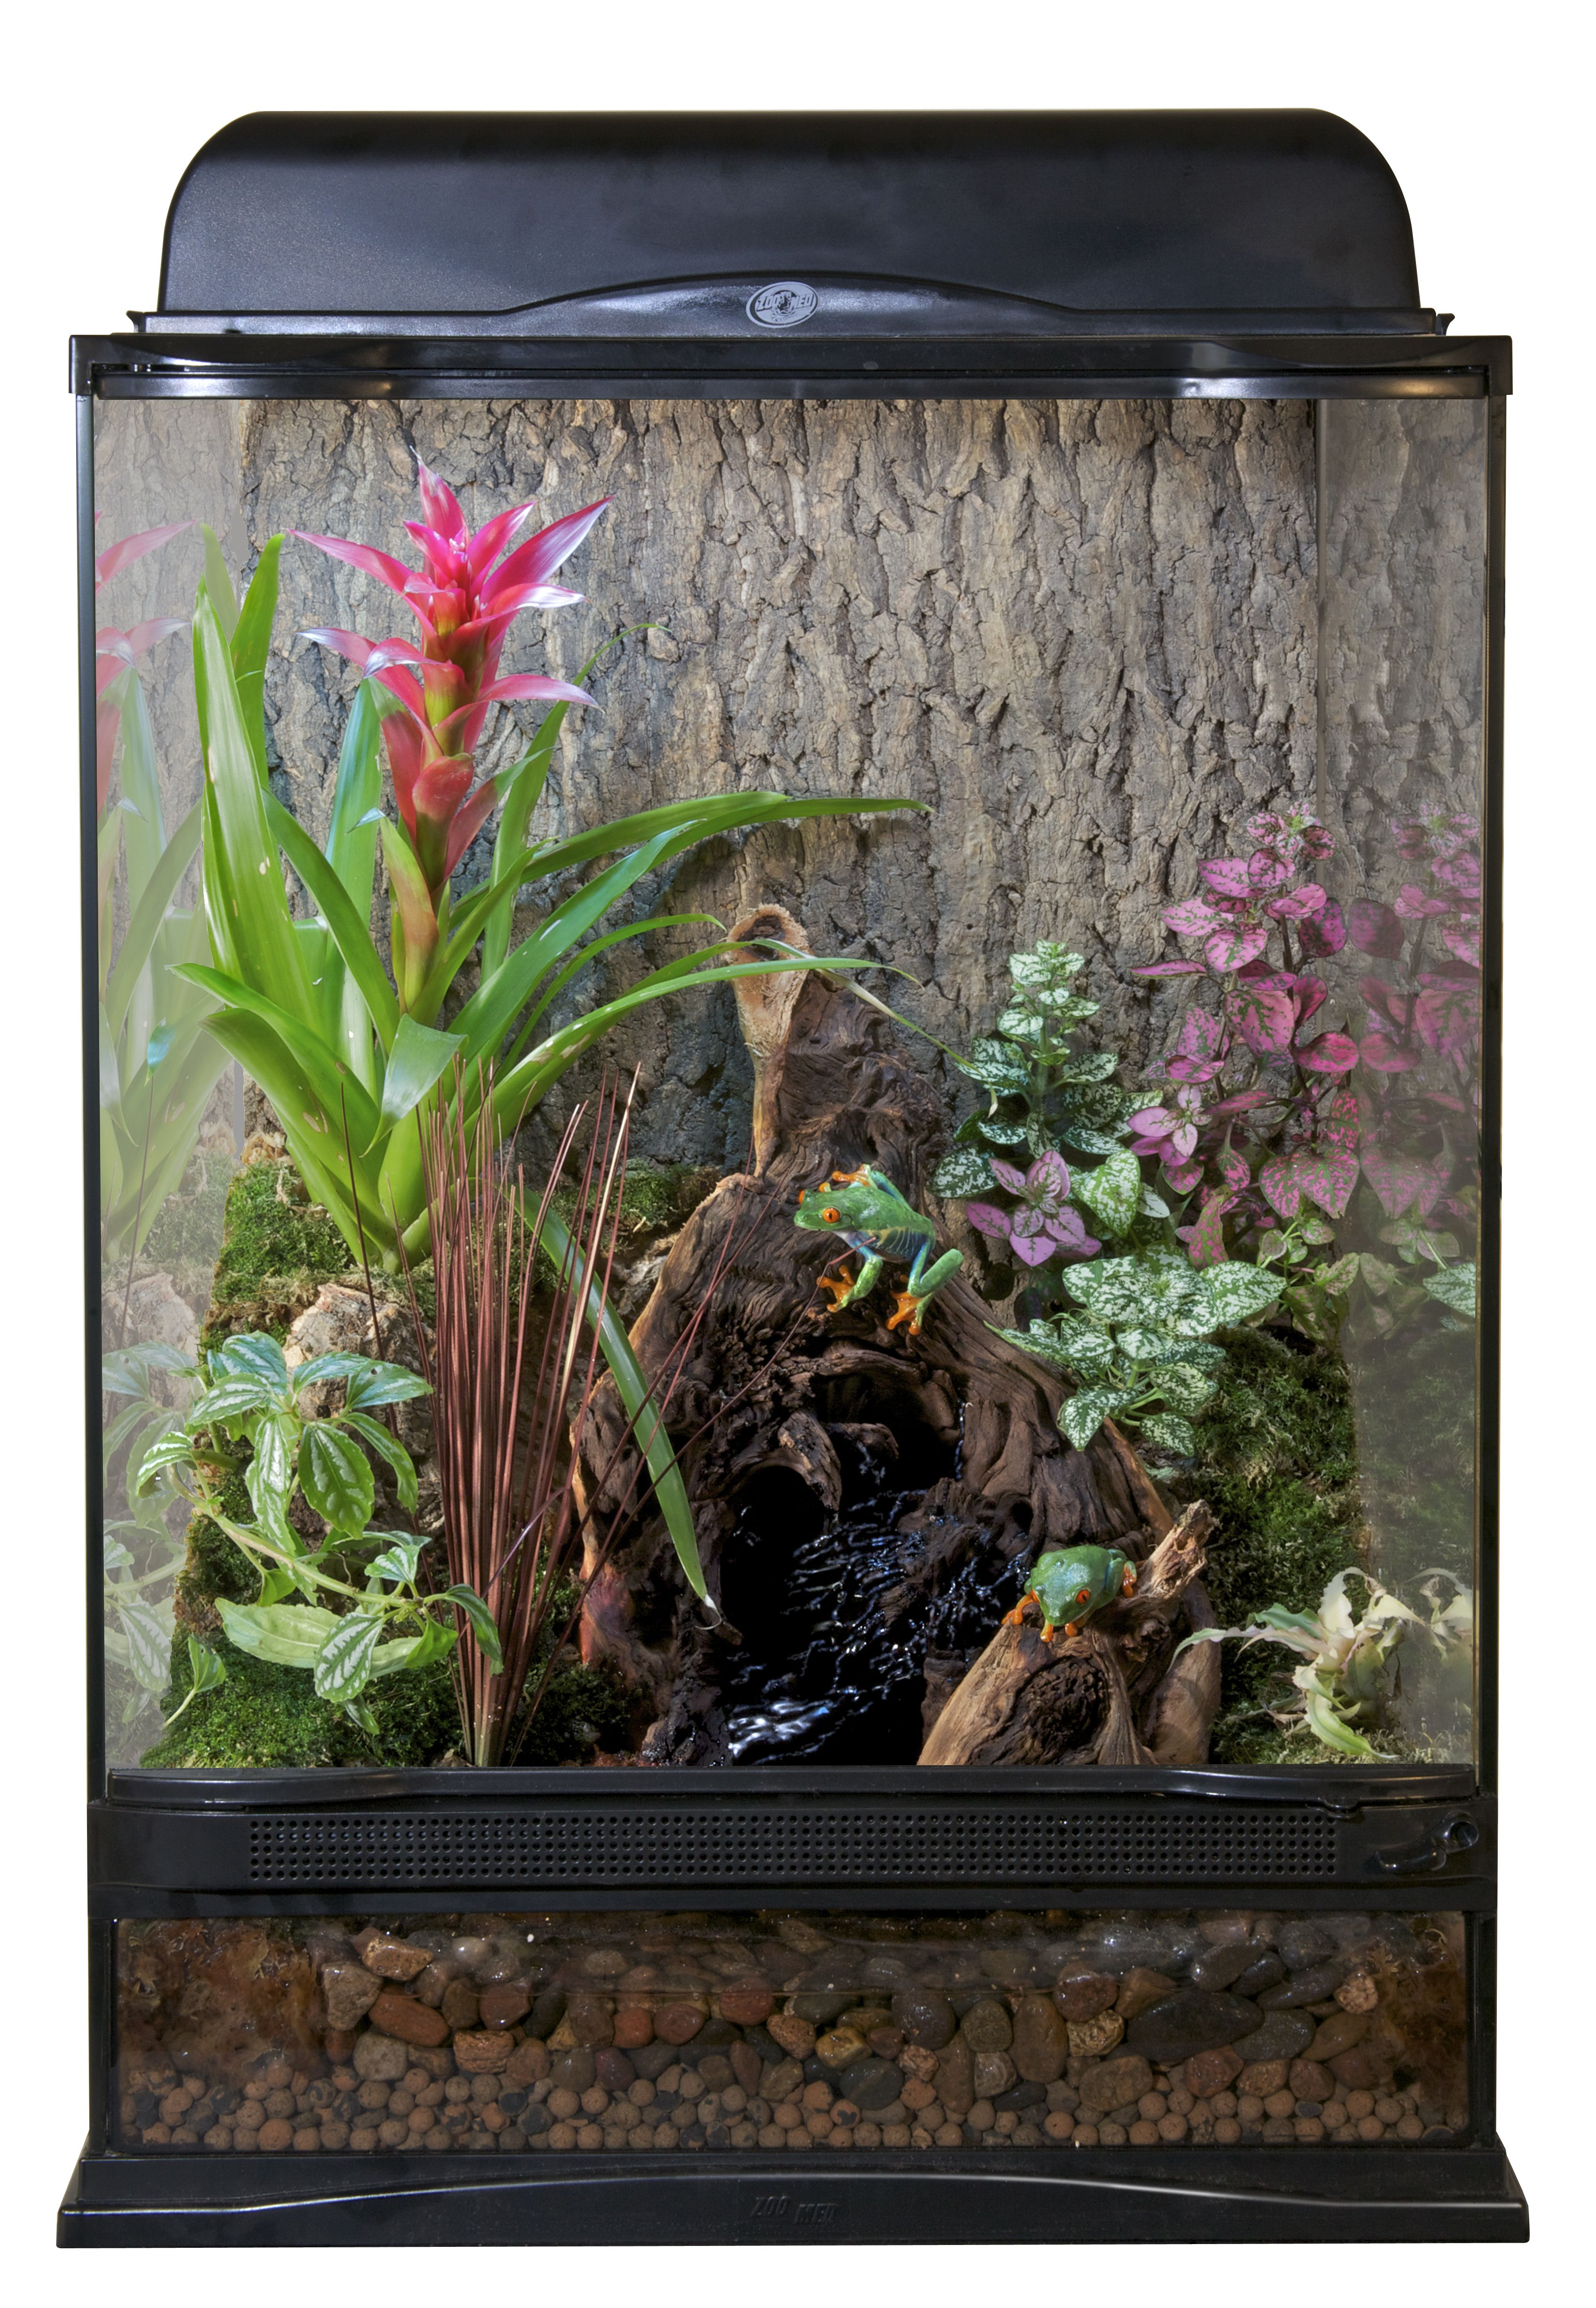 12x12x18 Zoo Med Terrarium Setup For Red Eyed Tree Frogs Diy This